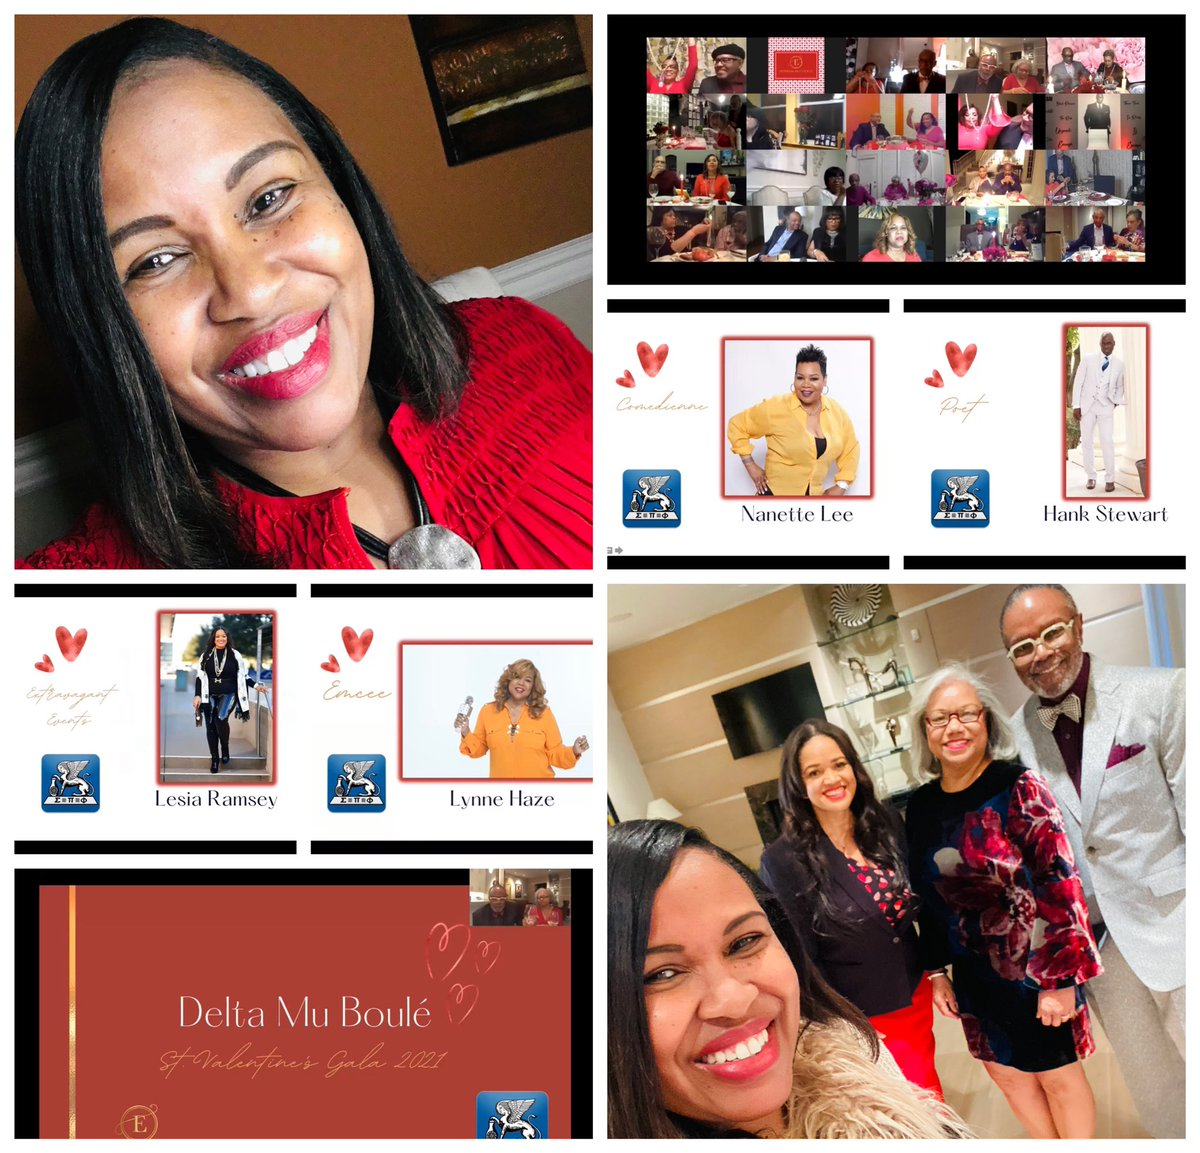 #LoveDelayed #TexasWinterStorm #LoveAlways #Extravagant #Event w/#Elite clientele! Thx @extravagantdfw for entrusting me as #VirtualEventProducer for #DeltaMuBoule #SigmaPiPhi #FortWorth chapter's #ValentinesDay Gala! 30 couples online! #ProducedByEva #IMessenger #TexasMetroNews